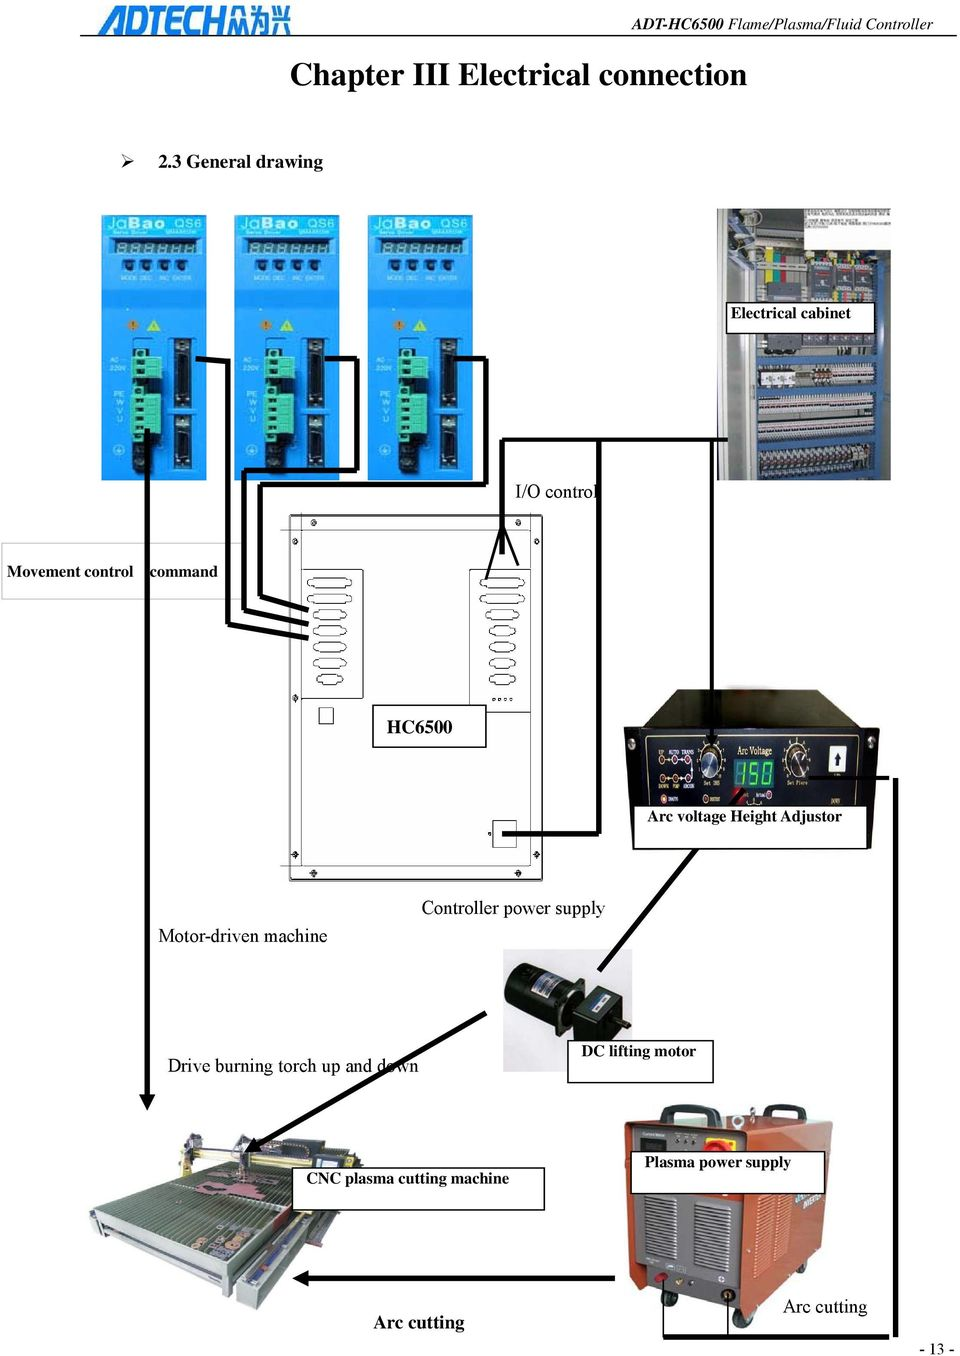 hight resolution of voltage height adjustor motor driven machine controller power supply drive burning torch